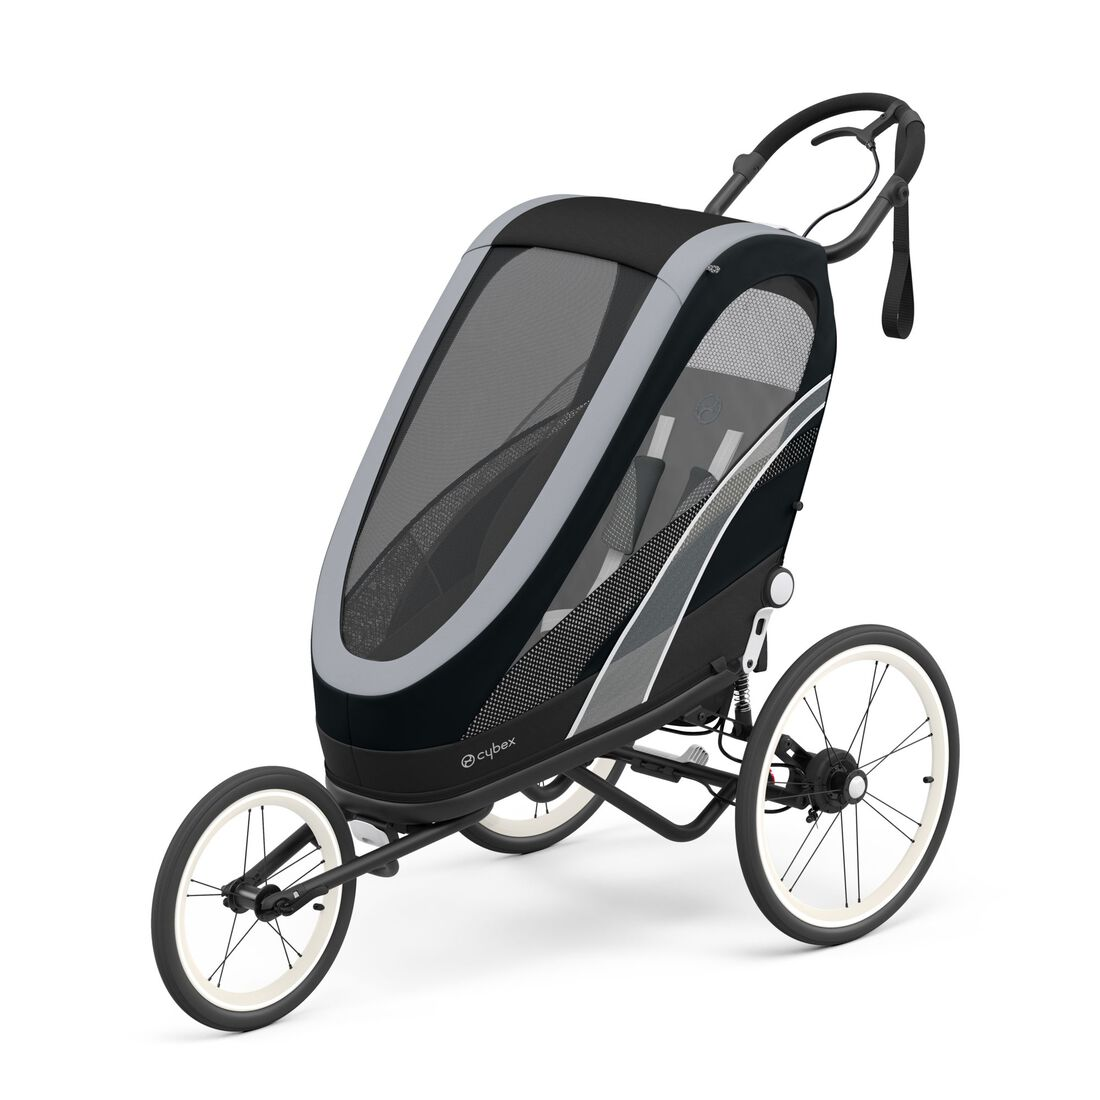 CYBEX Zeno Seat Pack - All Black in All Black large image number 2